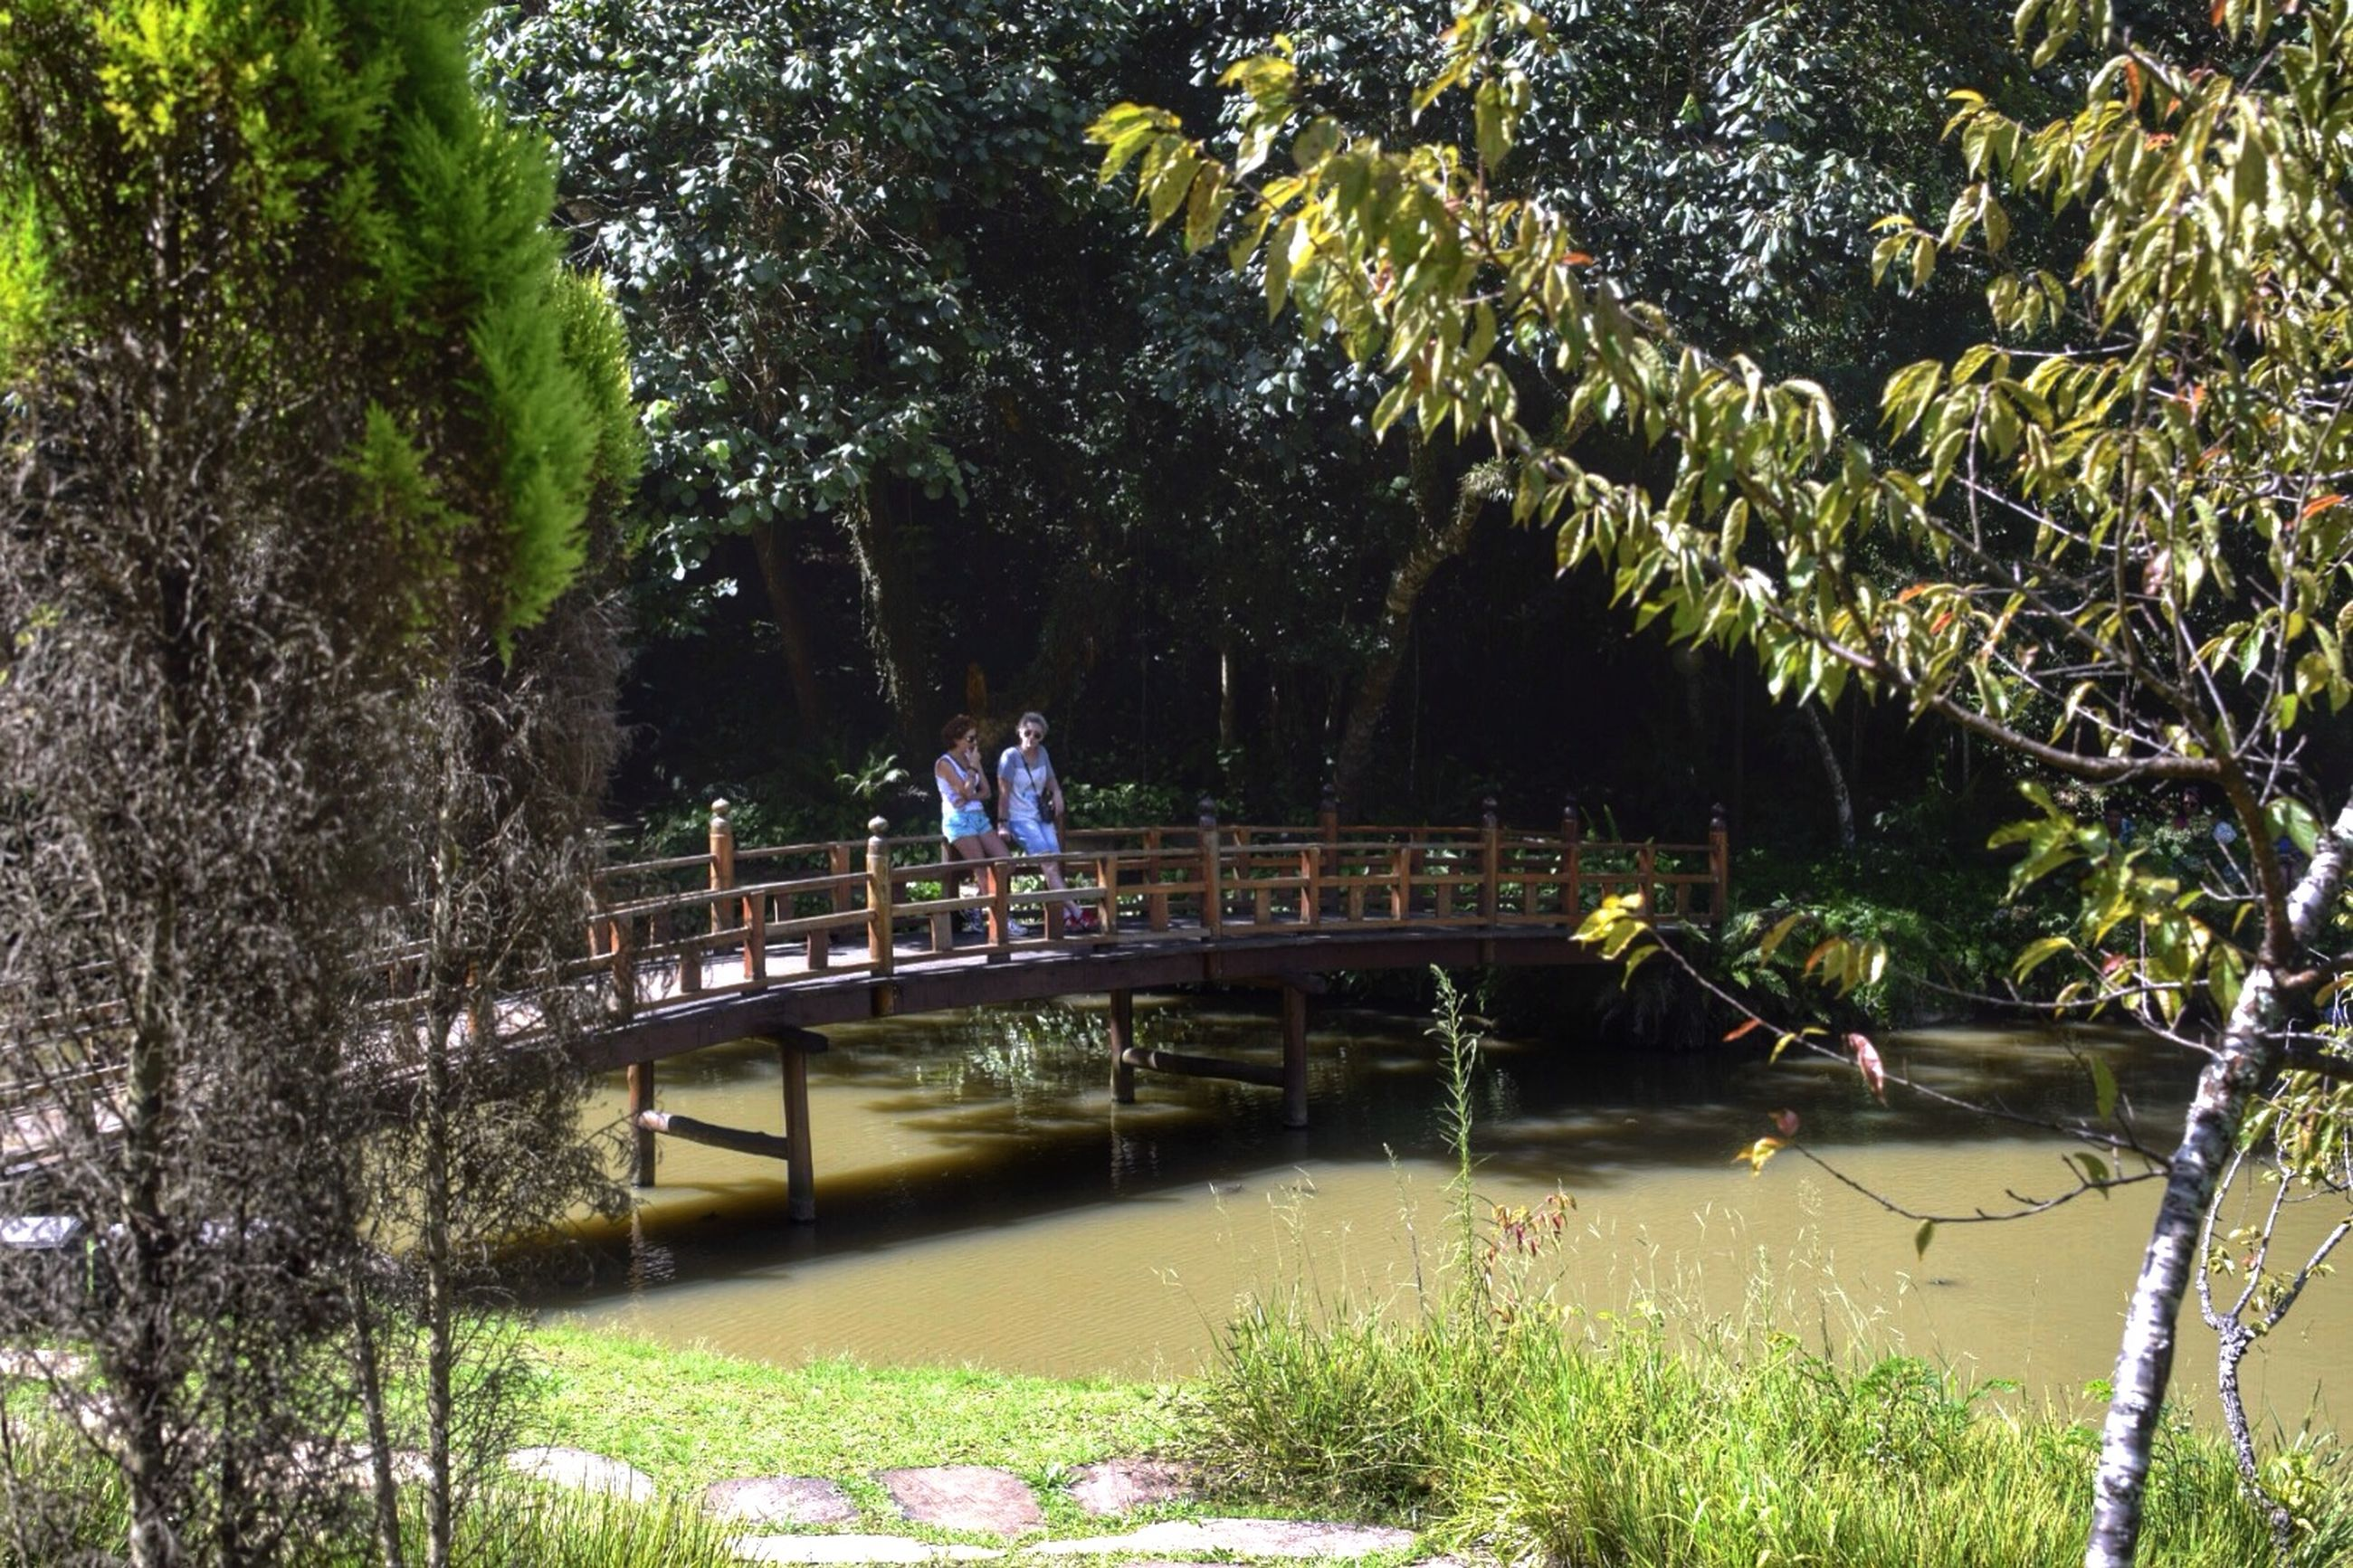 tree, water, growth, bridge - man made structure, plant, railing, green color, park - man made space, nature, footbridge, connection, tranquility, leisure activity, beauty in nature, branch, river, tranquil scene, lifestyles, men